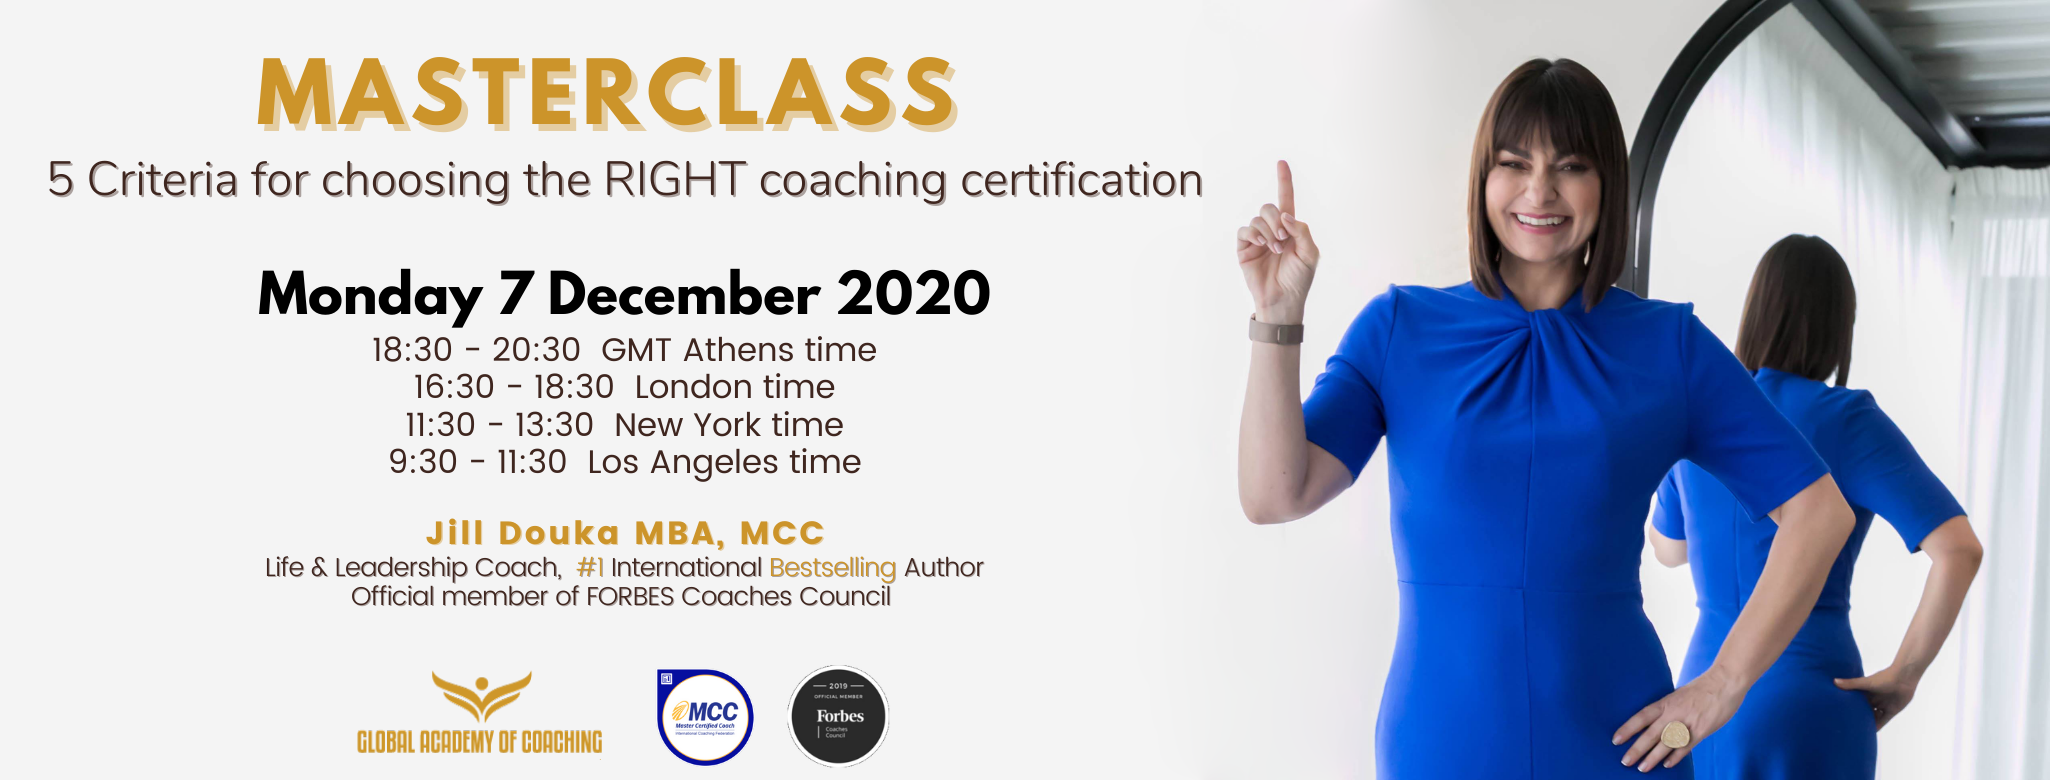 https://globalacademyofcoaching.com/wp-content/uploads/2020/11/Cover-banner.png